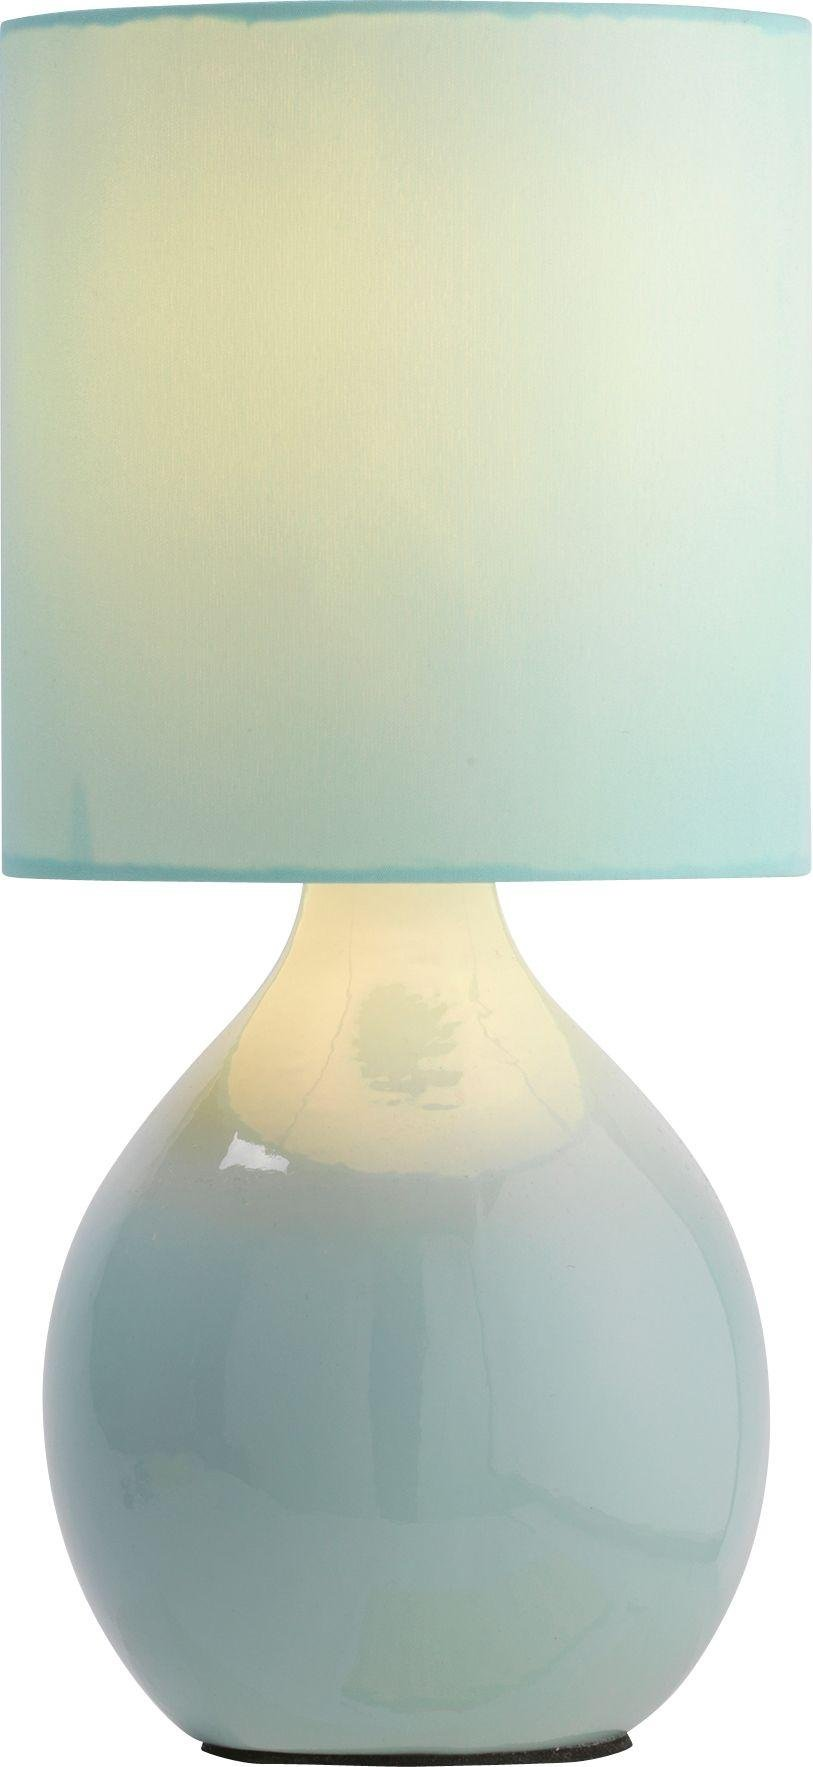 colourmatch round ceramic table lamp  jellybean blue.